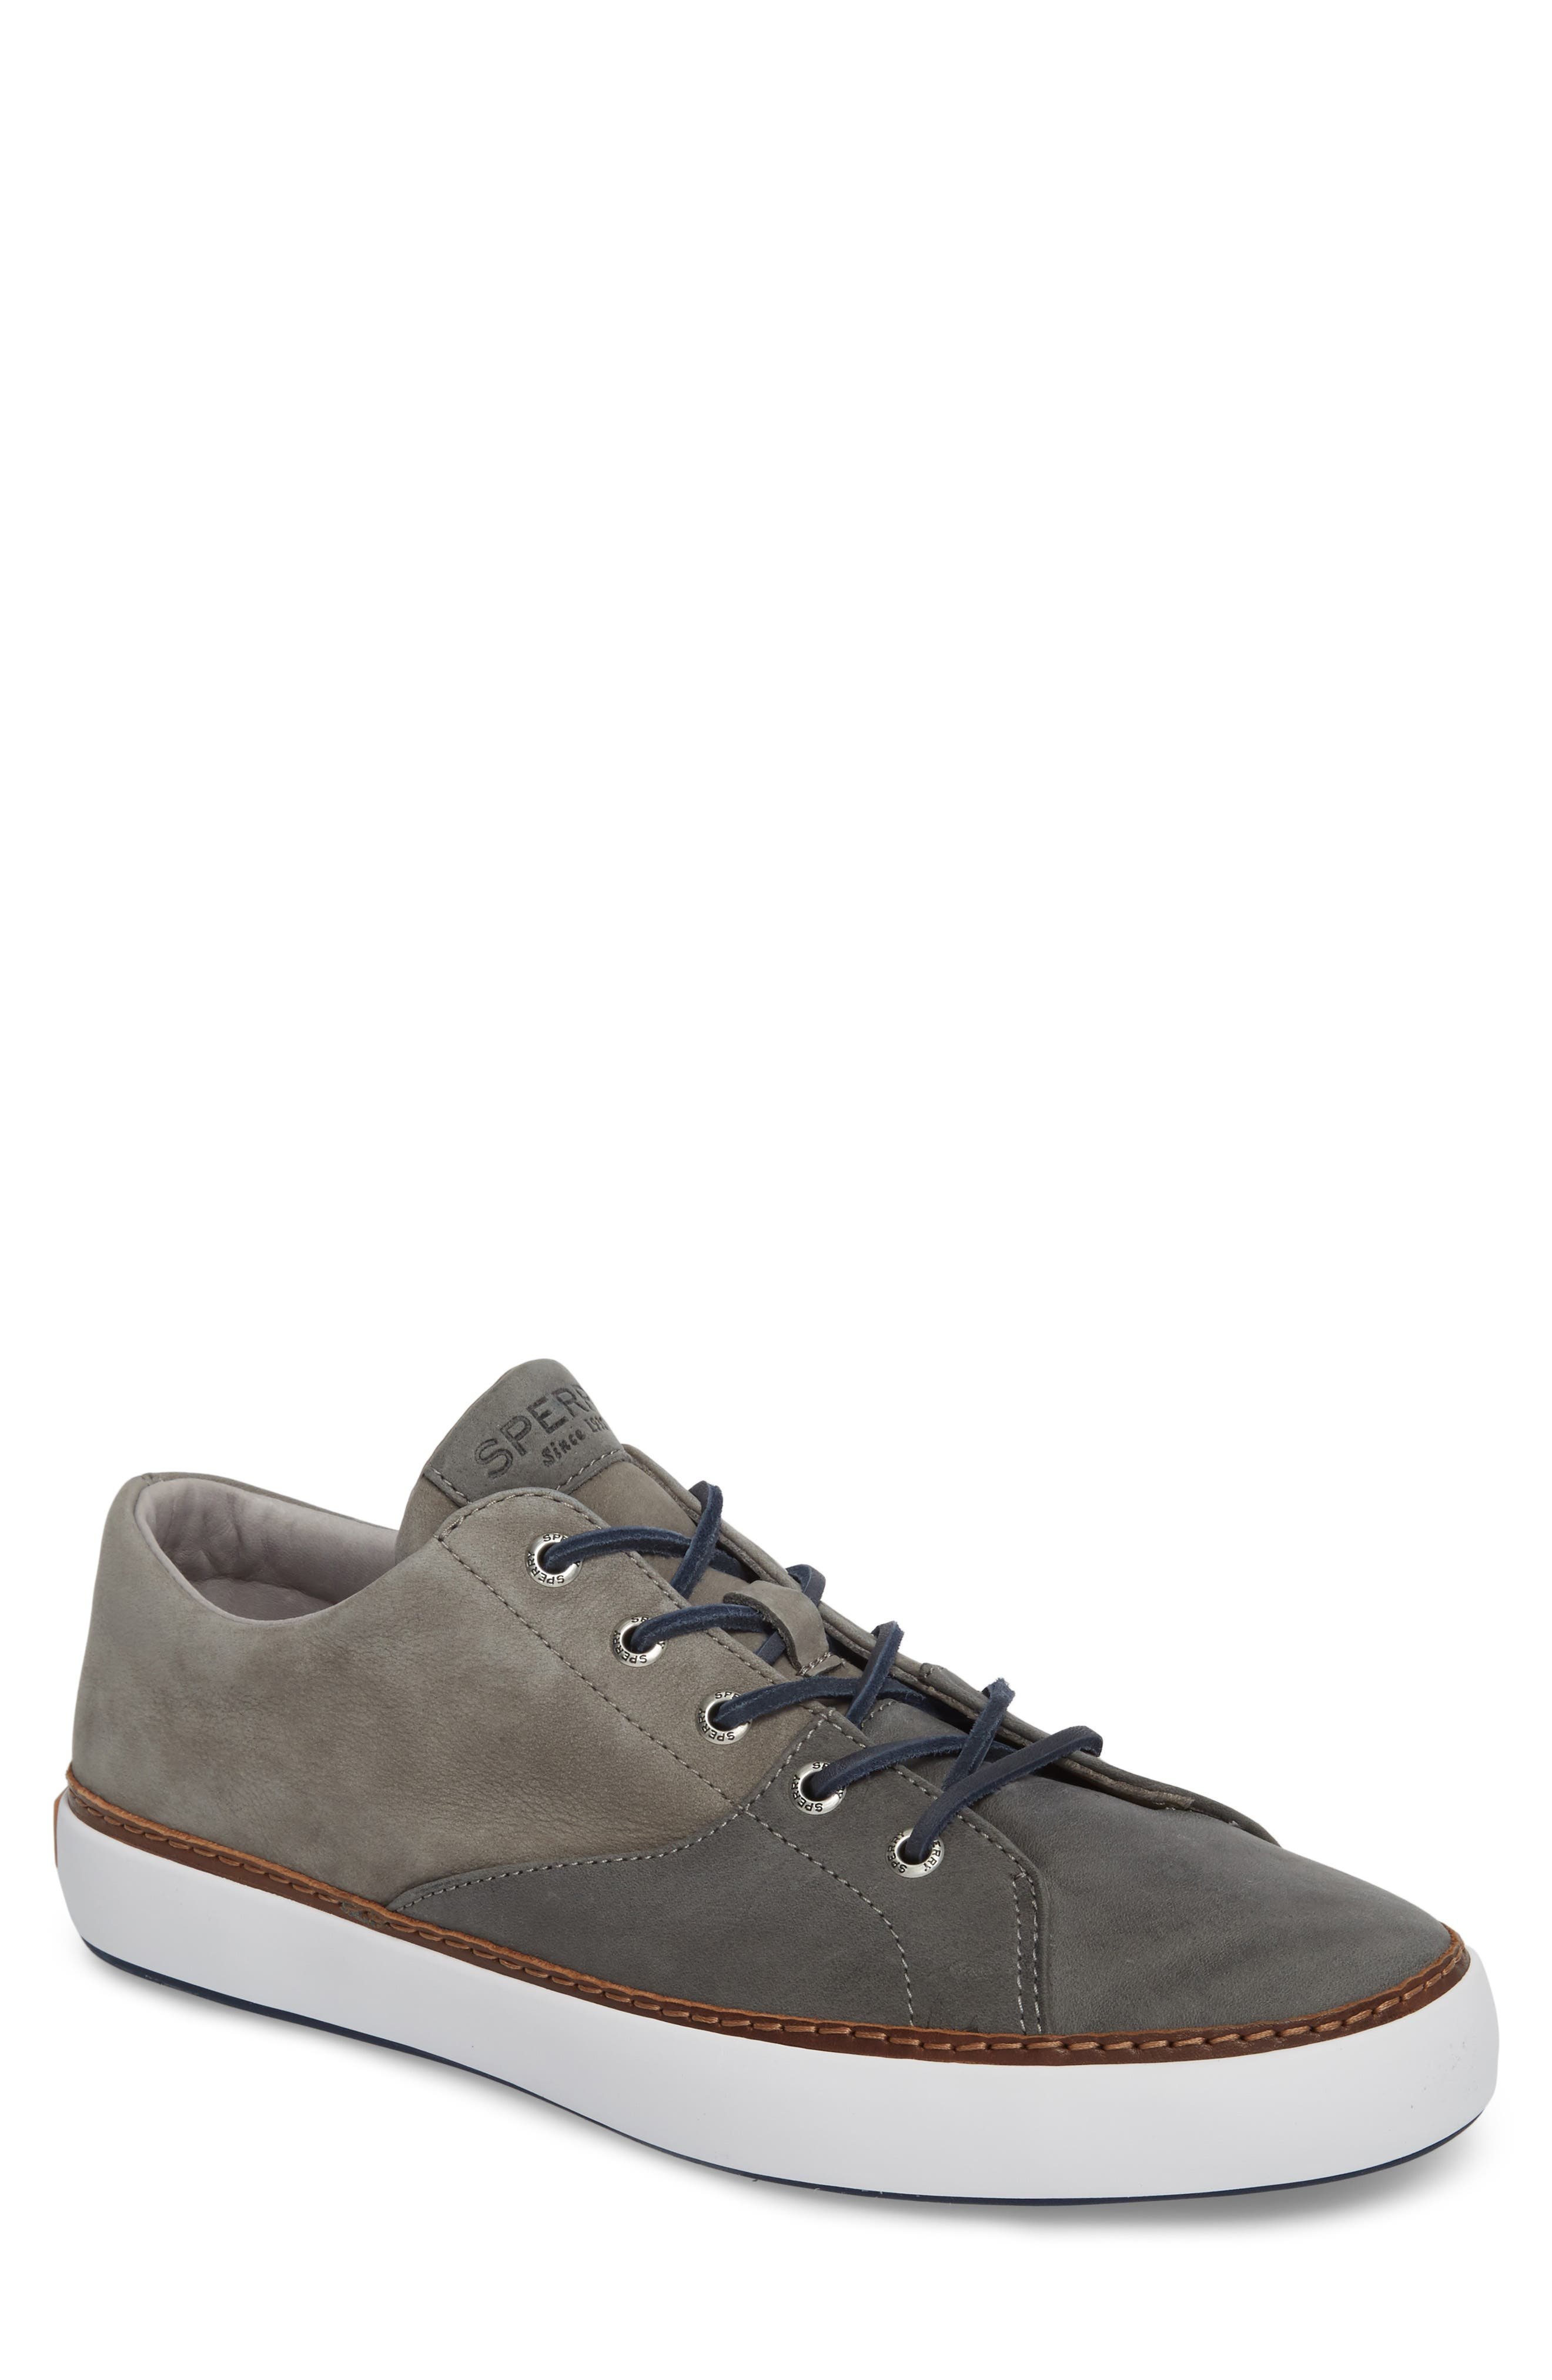 Gold Cup Haven Sneaker,                         Main,                         color, 020